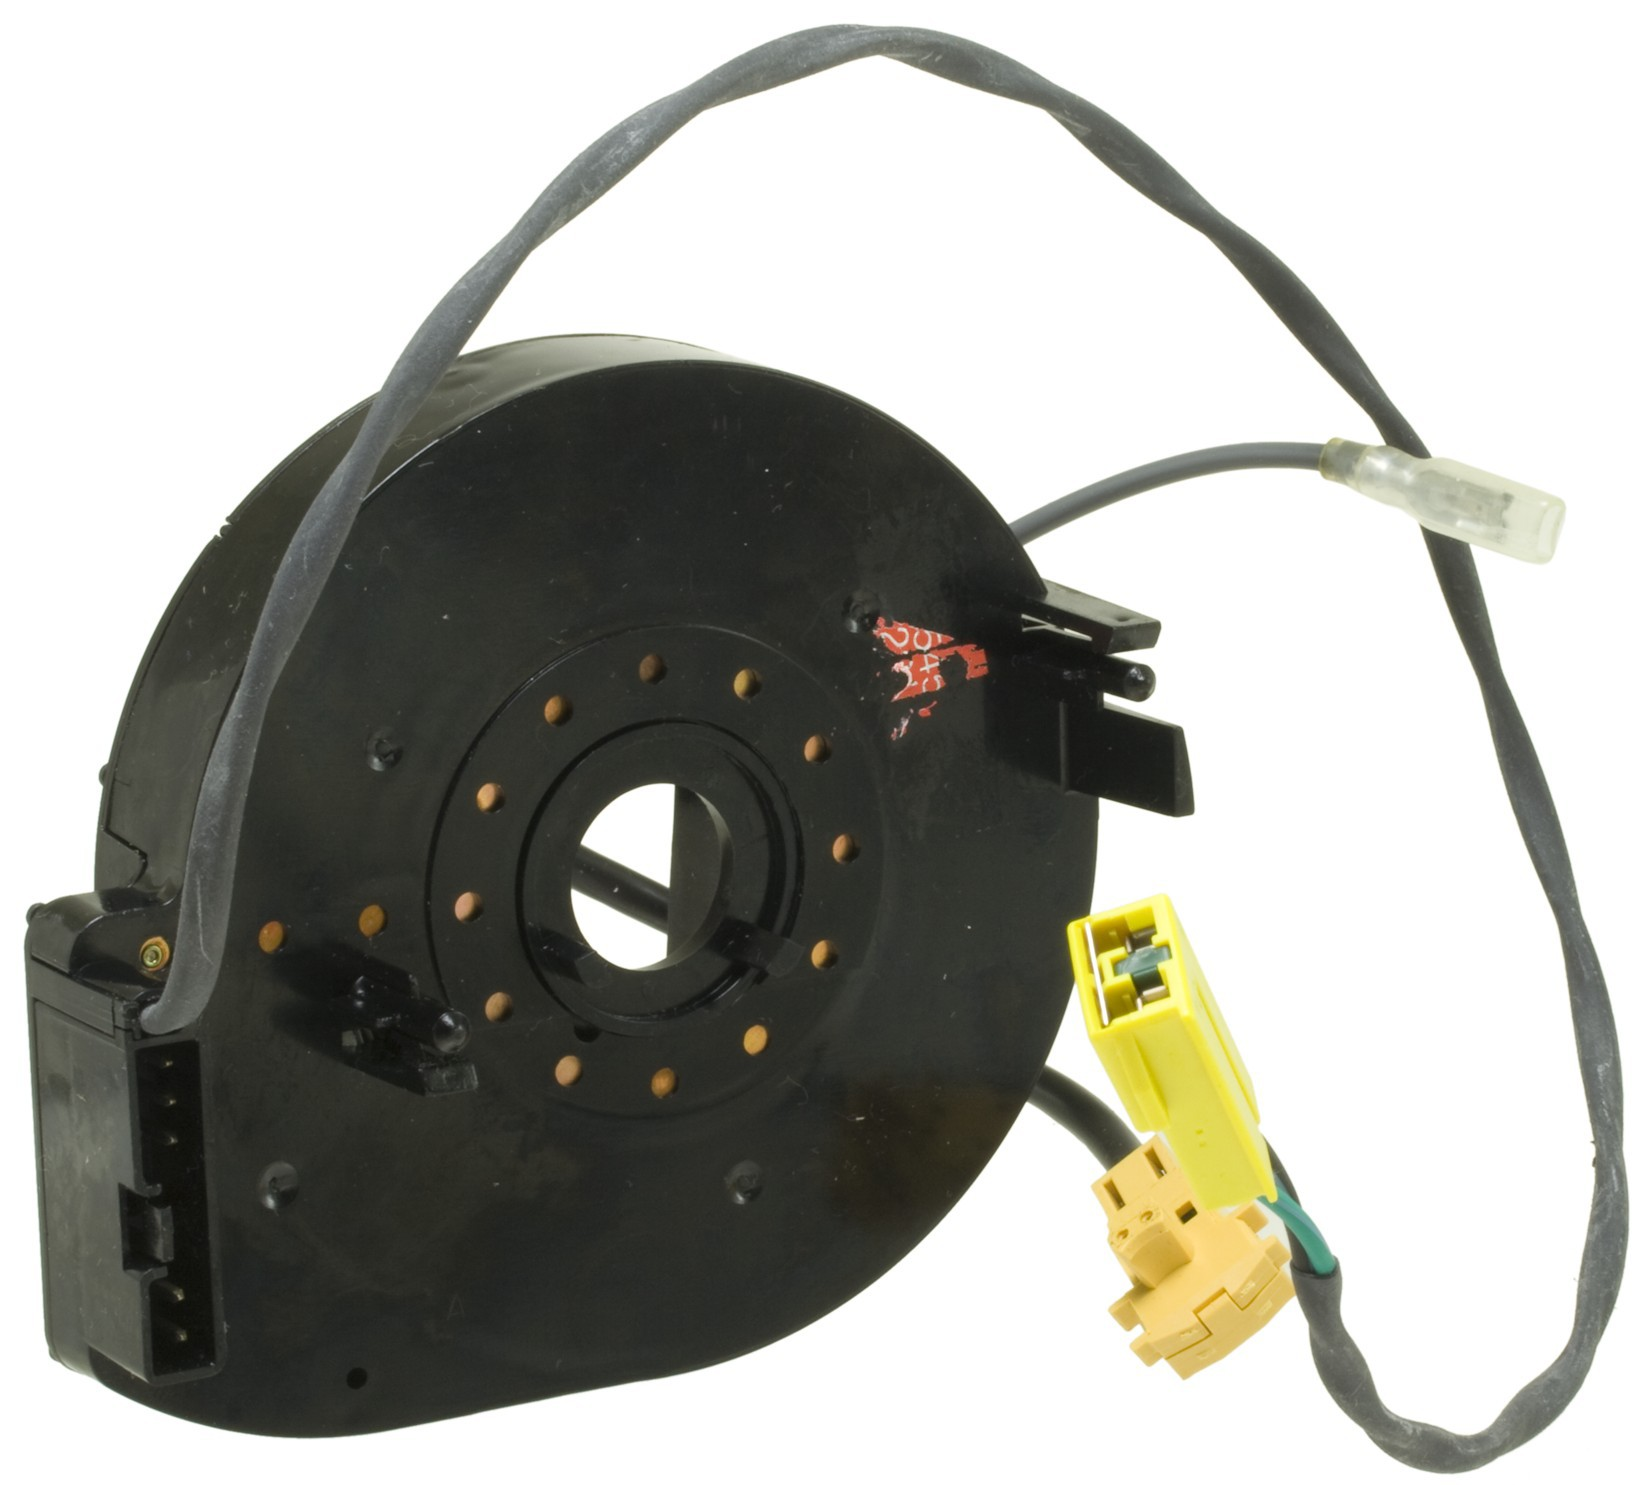 com/Replacement_Parts/DODGE/PICKUP_RAM_2500/Air_Bag_Clockspring.html